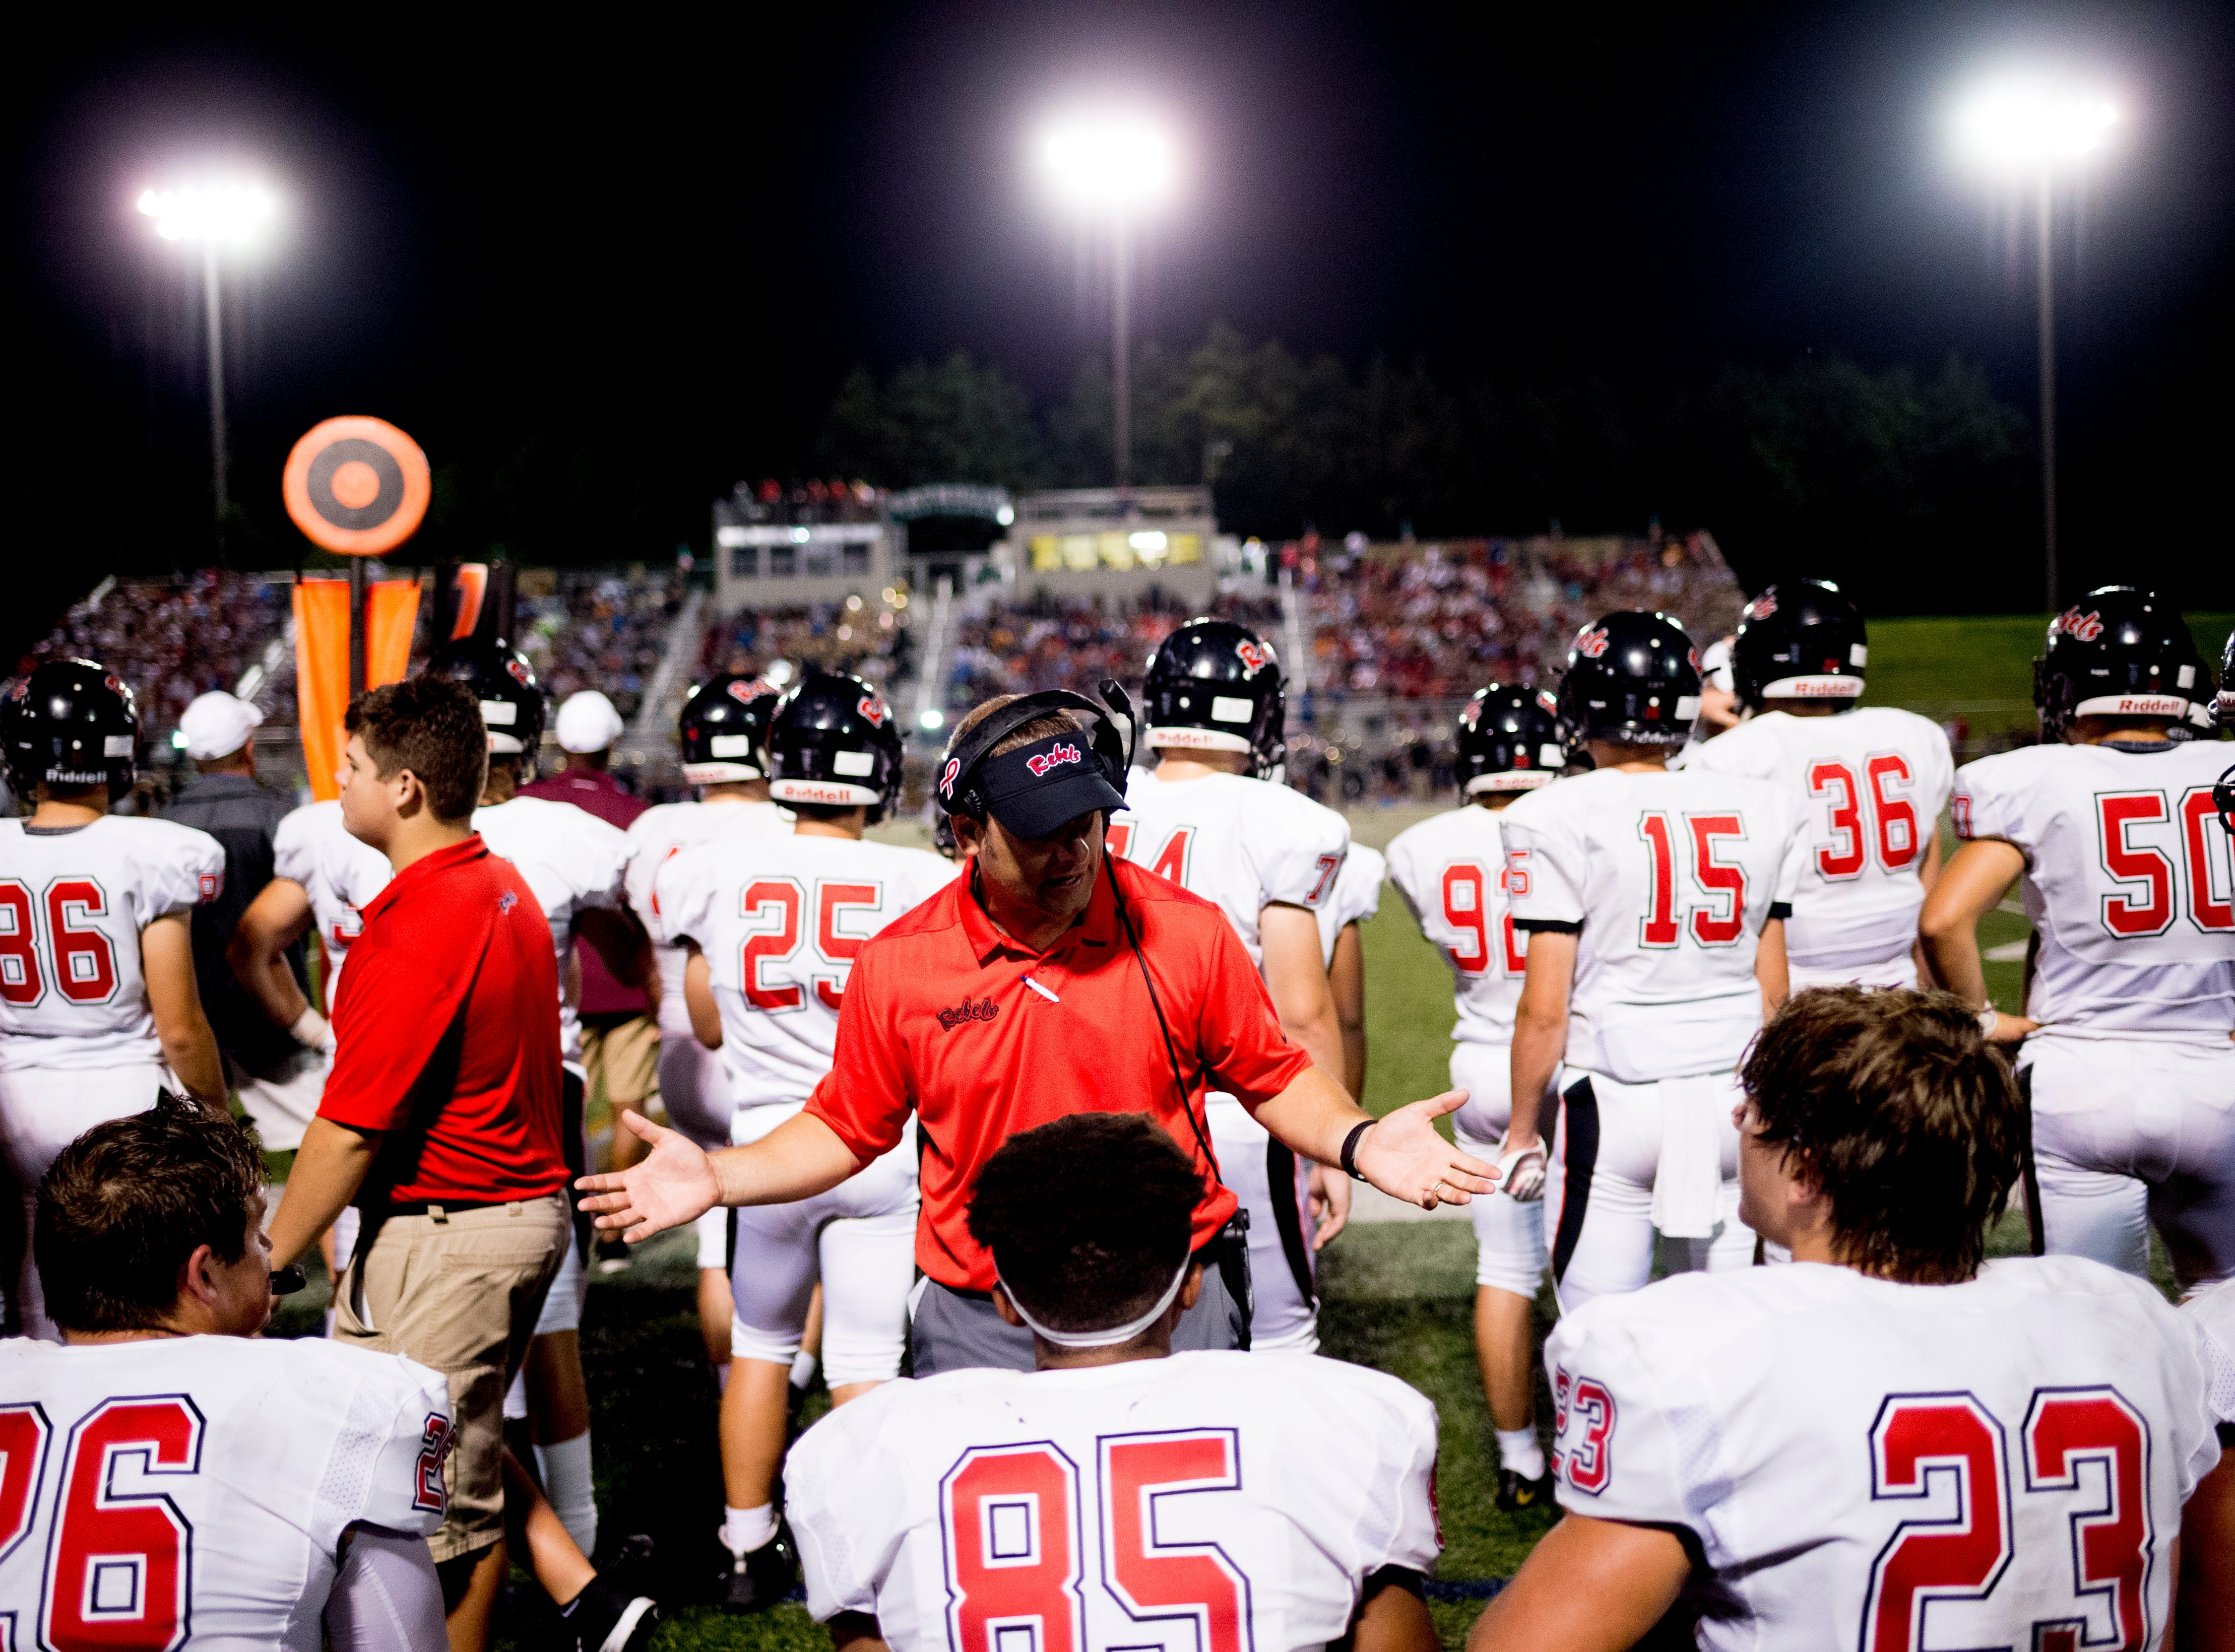 Maryville's Seth Orren (26), Maryville's Matthew Brooks (85) and Maryville's Mason Shelton (23) speak with a coach during a football game between Maryville and Catholic at Catholic High School in Knoxville, Tennessee on Friday, August 17, 2018.